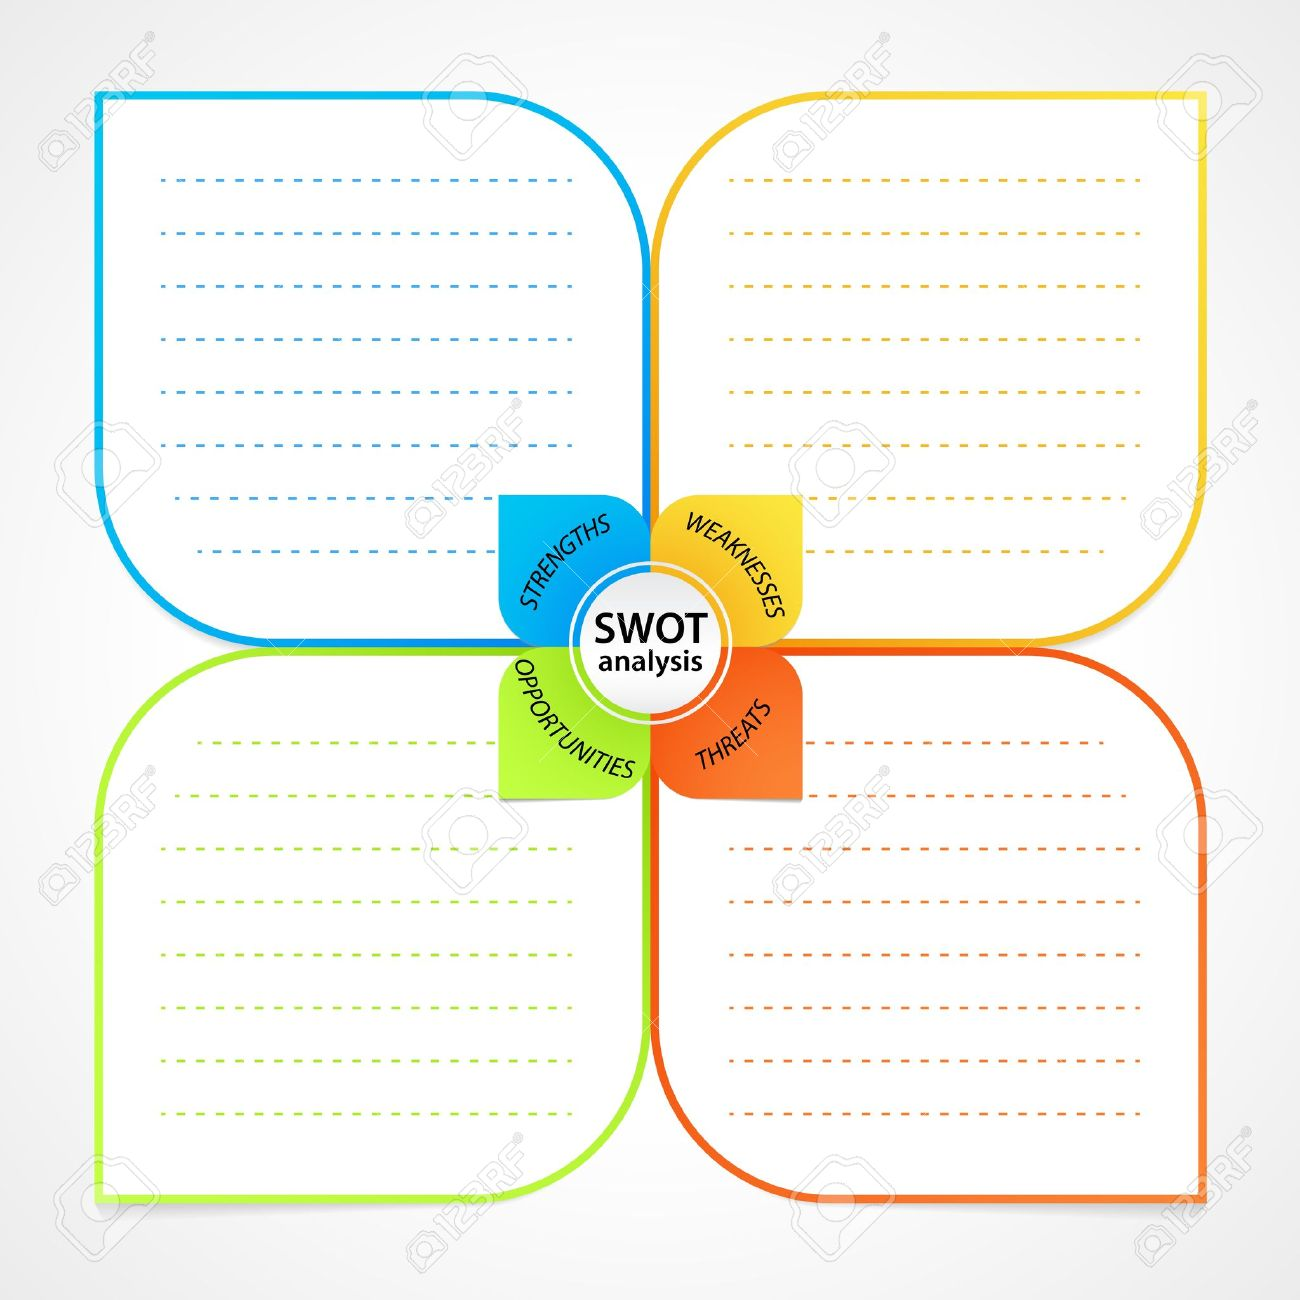 sheet swot analysis diagram wit space for own strengths sheet swot analysis diagram wit space for own strengths weaknesses threats and opportunities